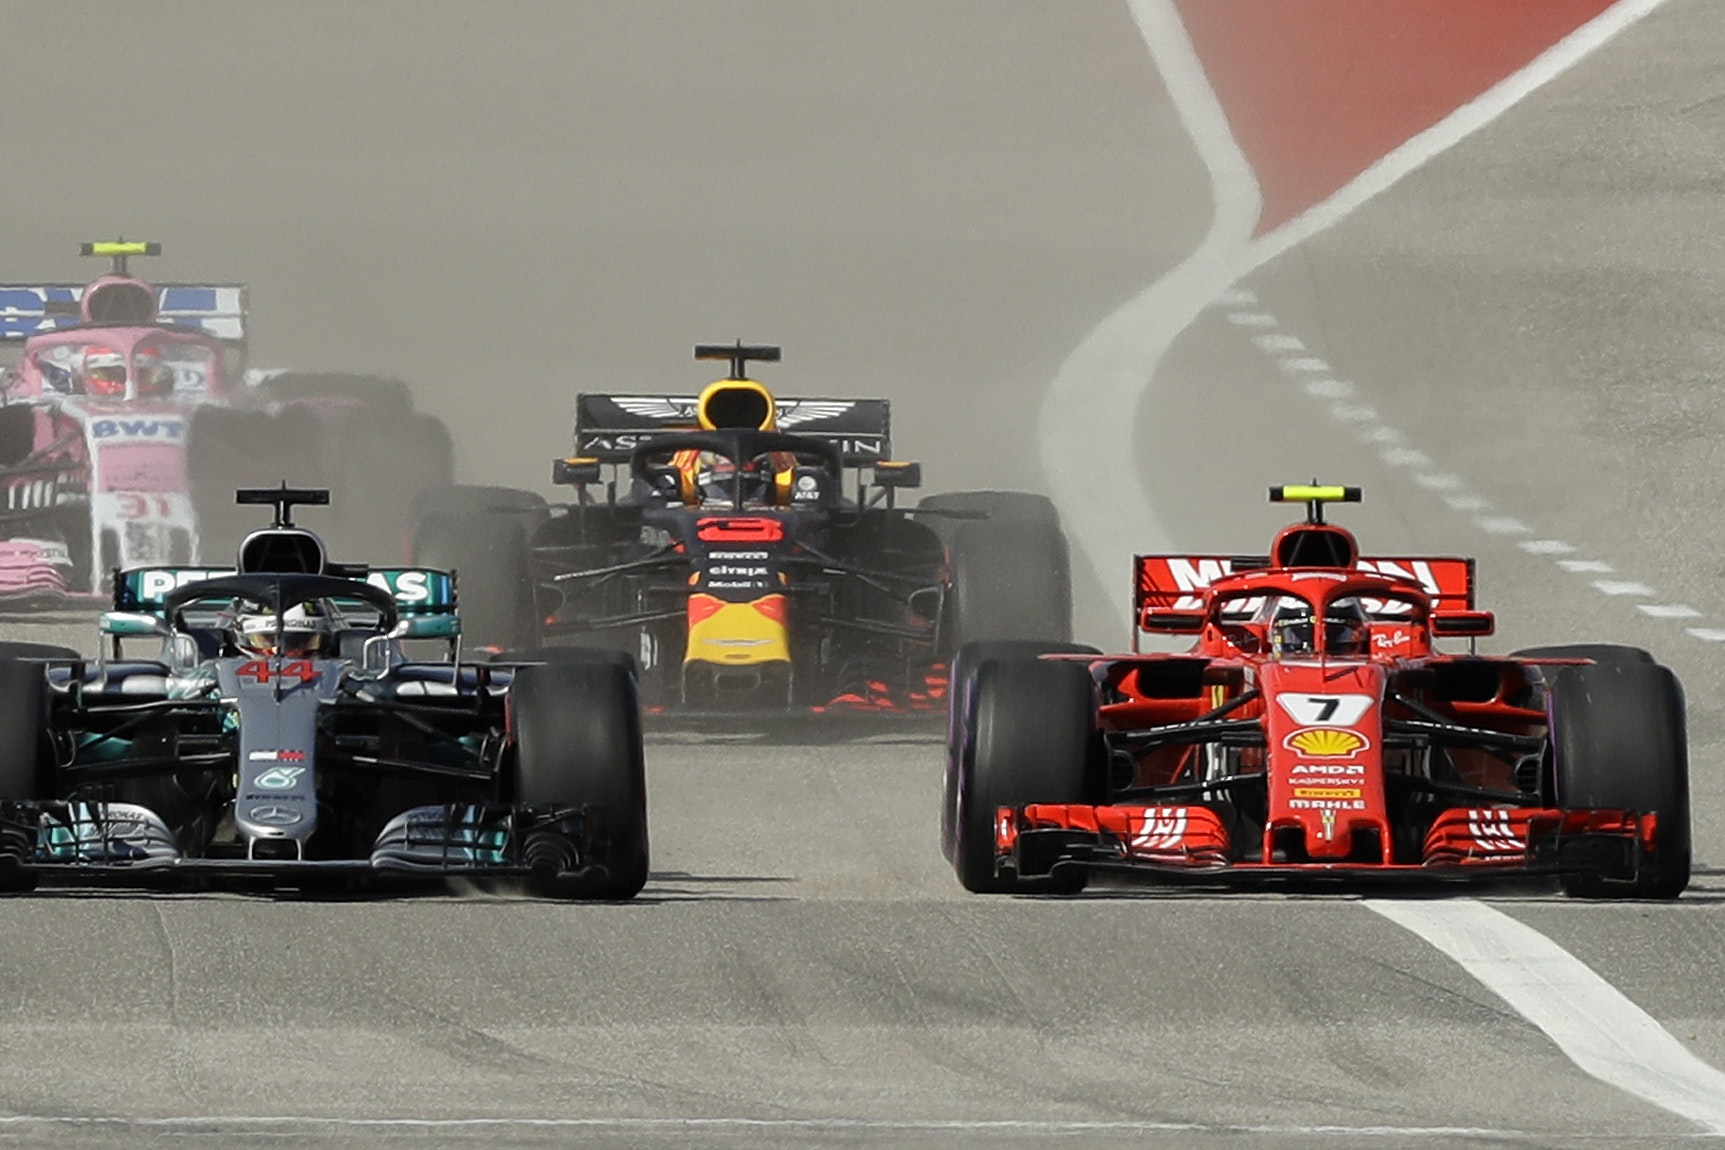 Cars at the US Grand Prix